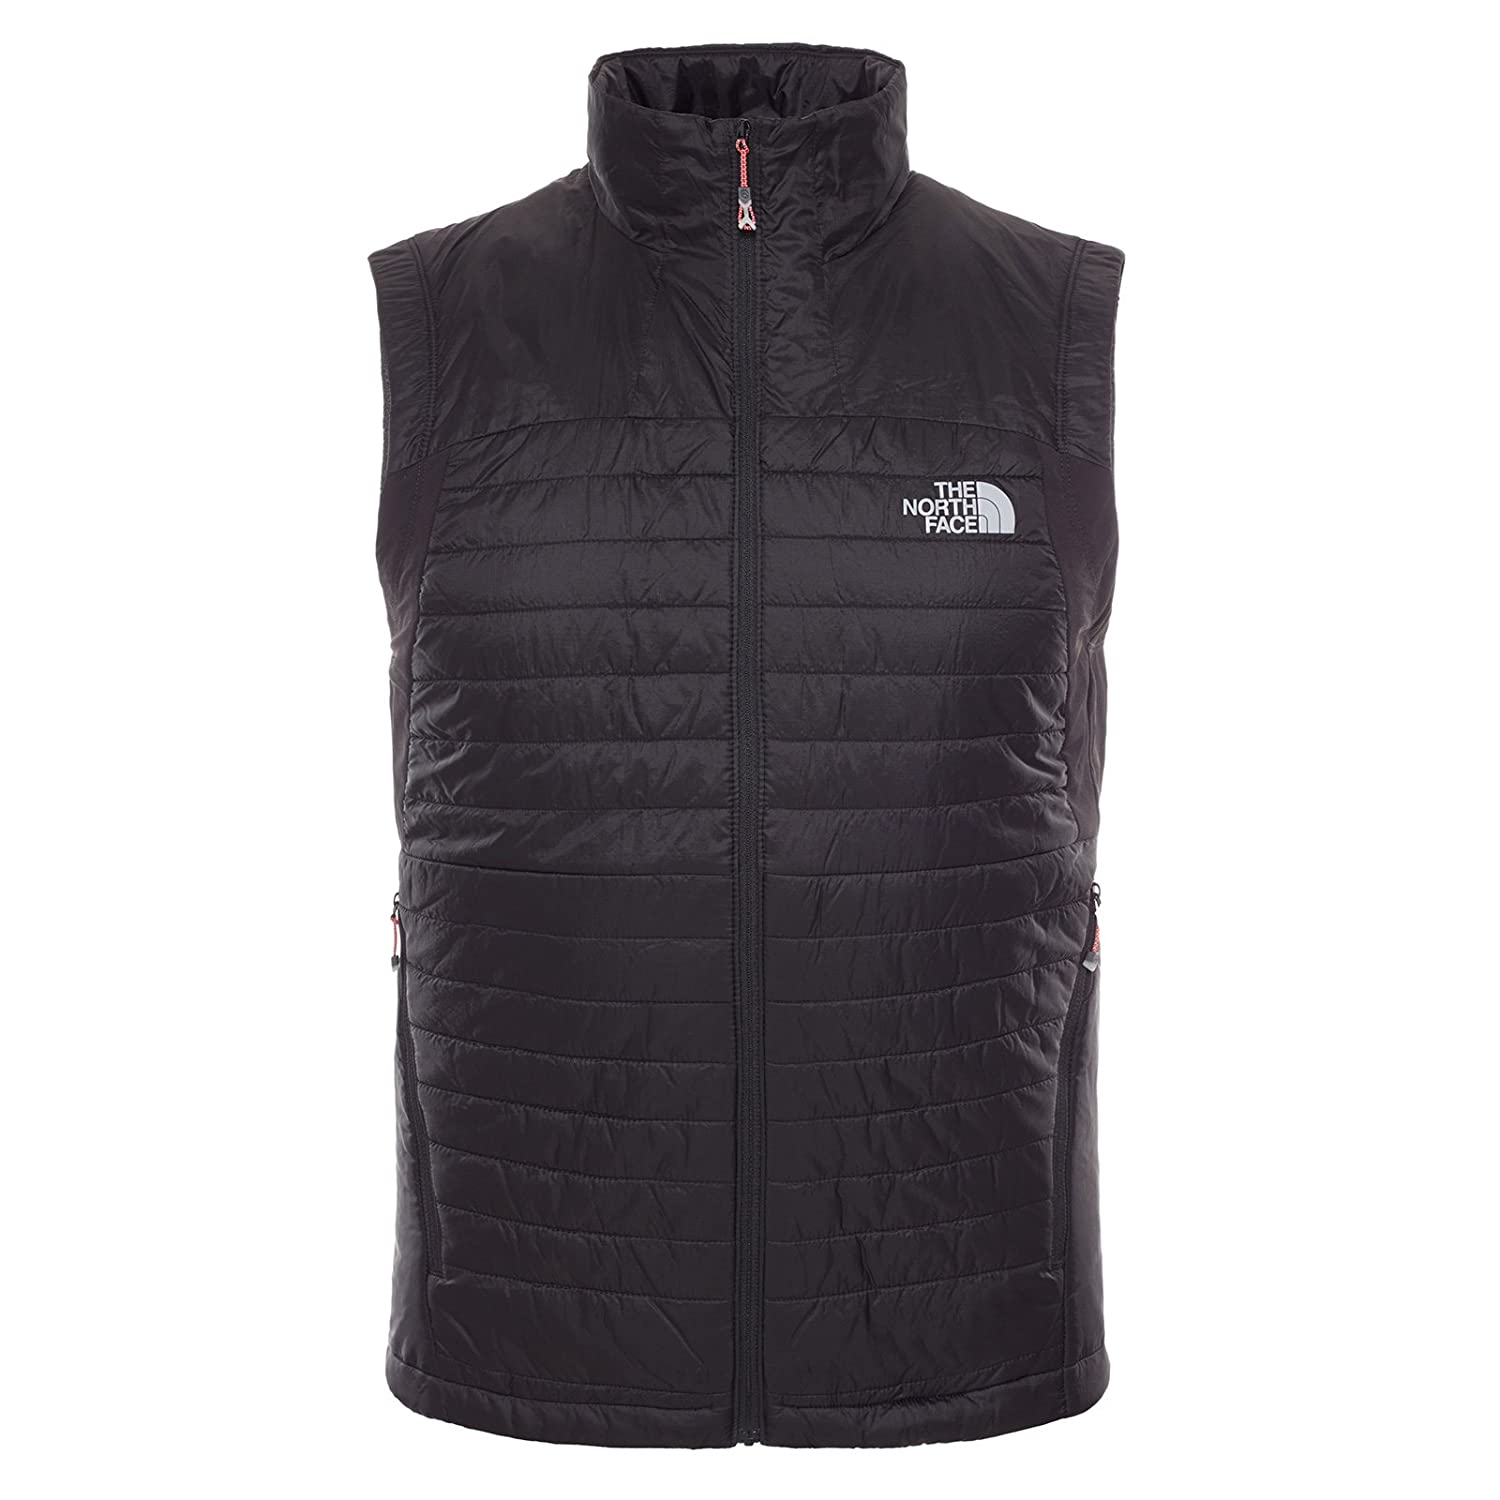 Herren Snowboard Weste The North Face Dnp Vest online kaufen